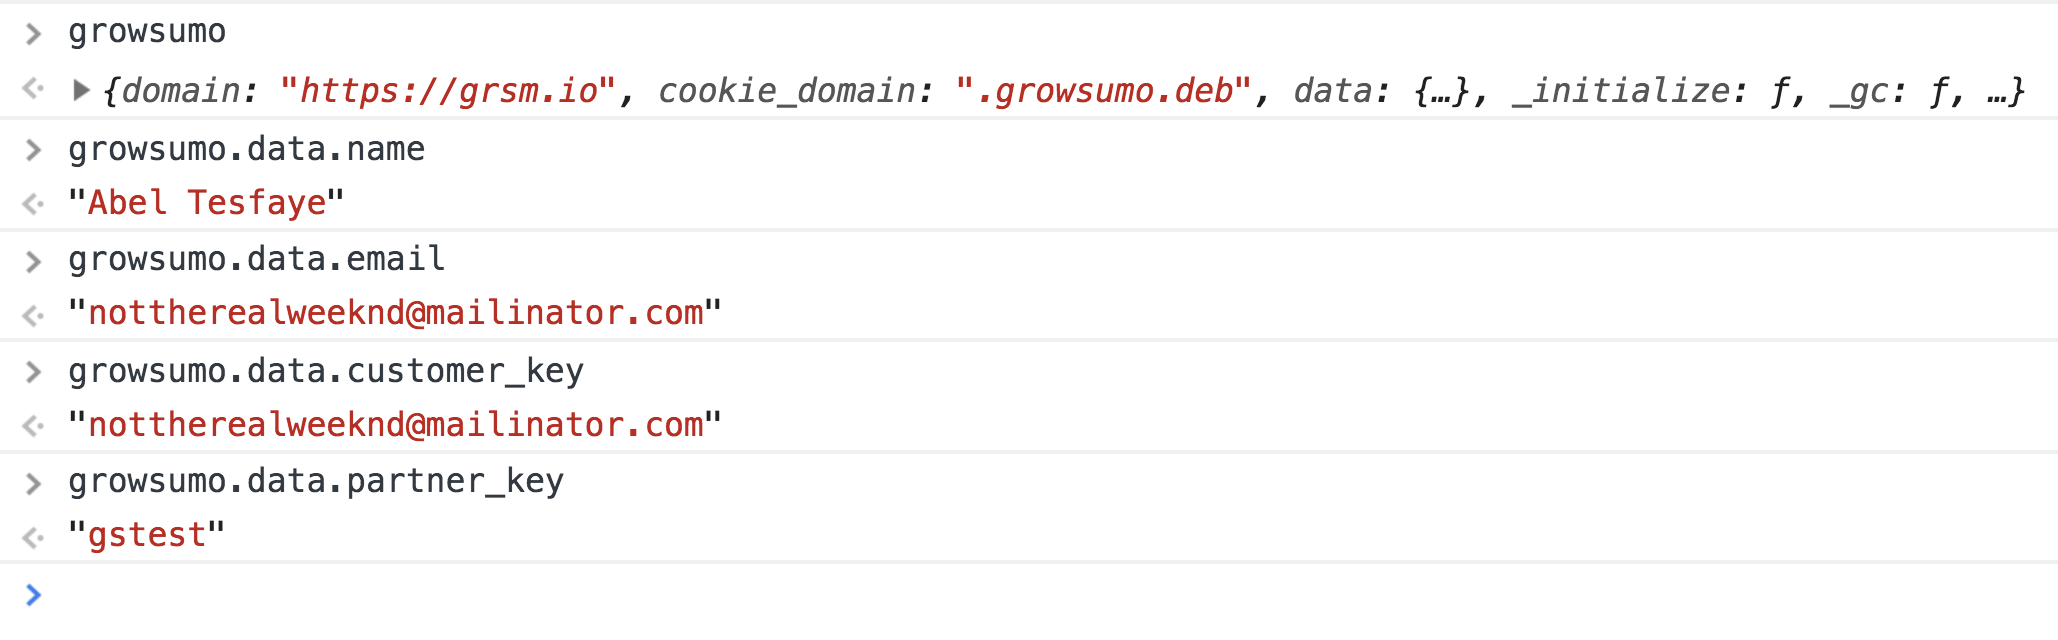 If we console.log() each of the `growsumo.data` fields before submission